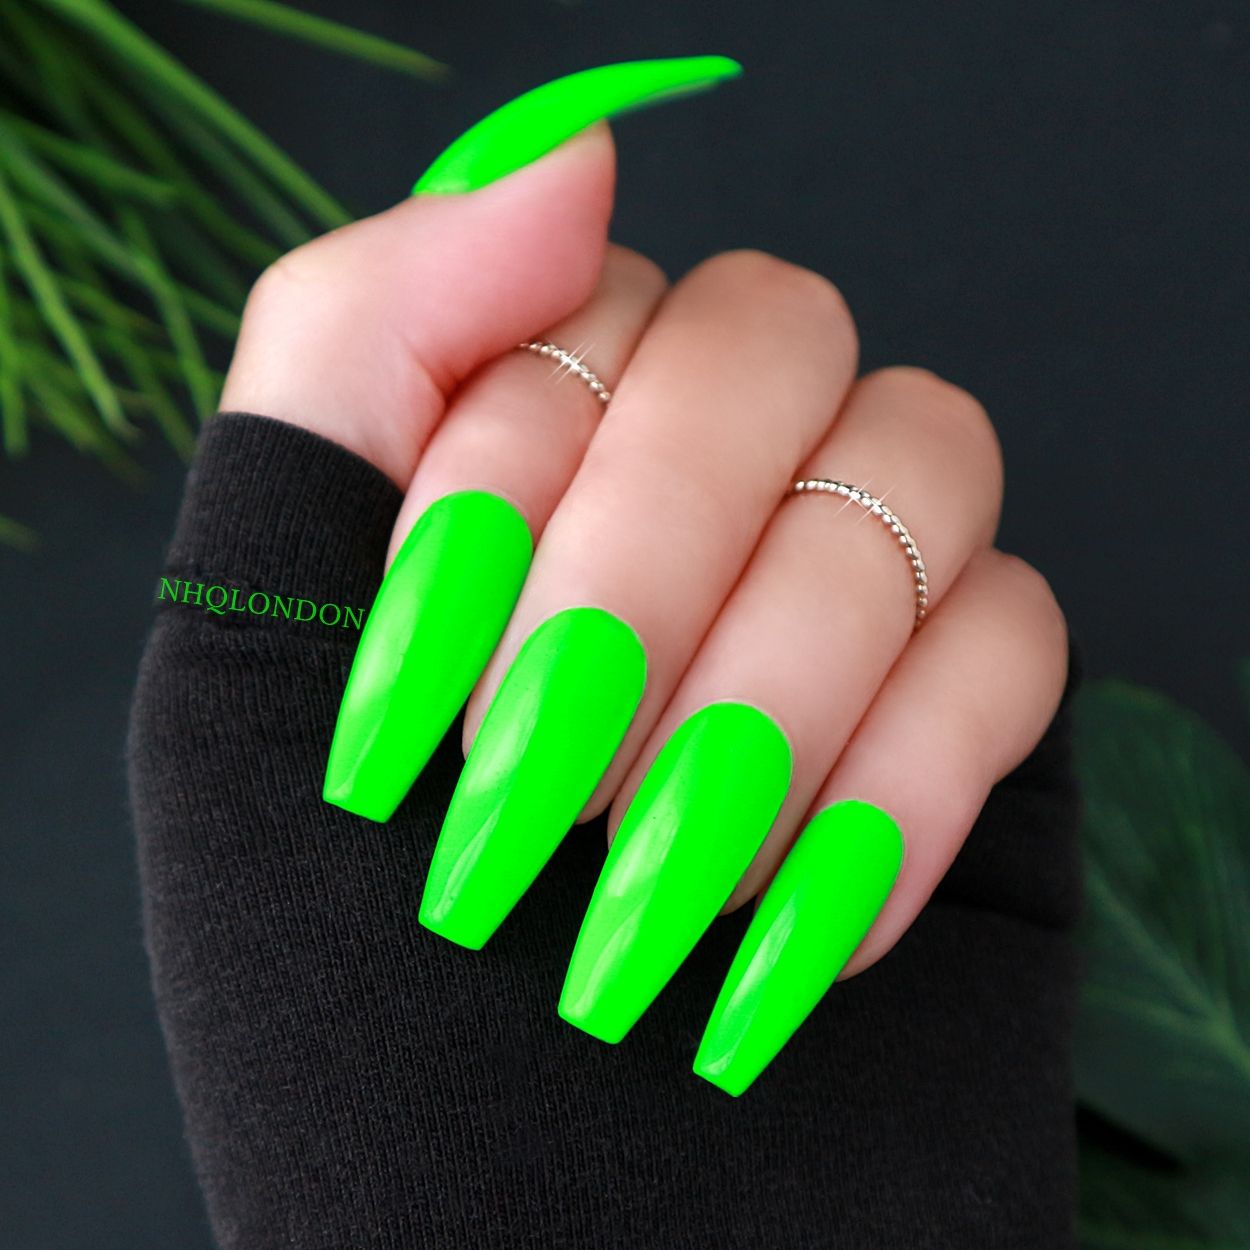 Neon Green Nails NHQ London